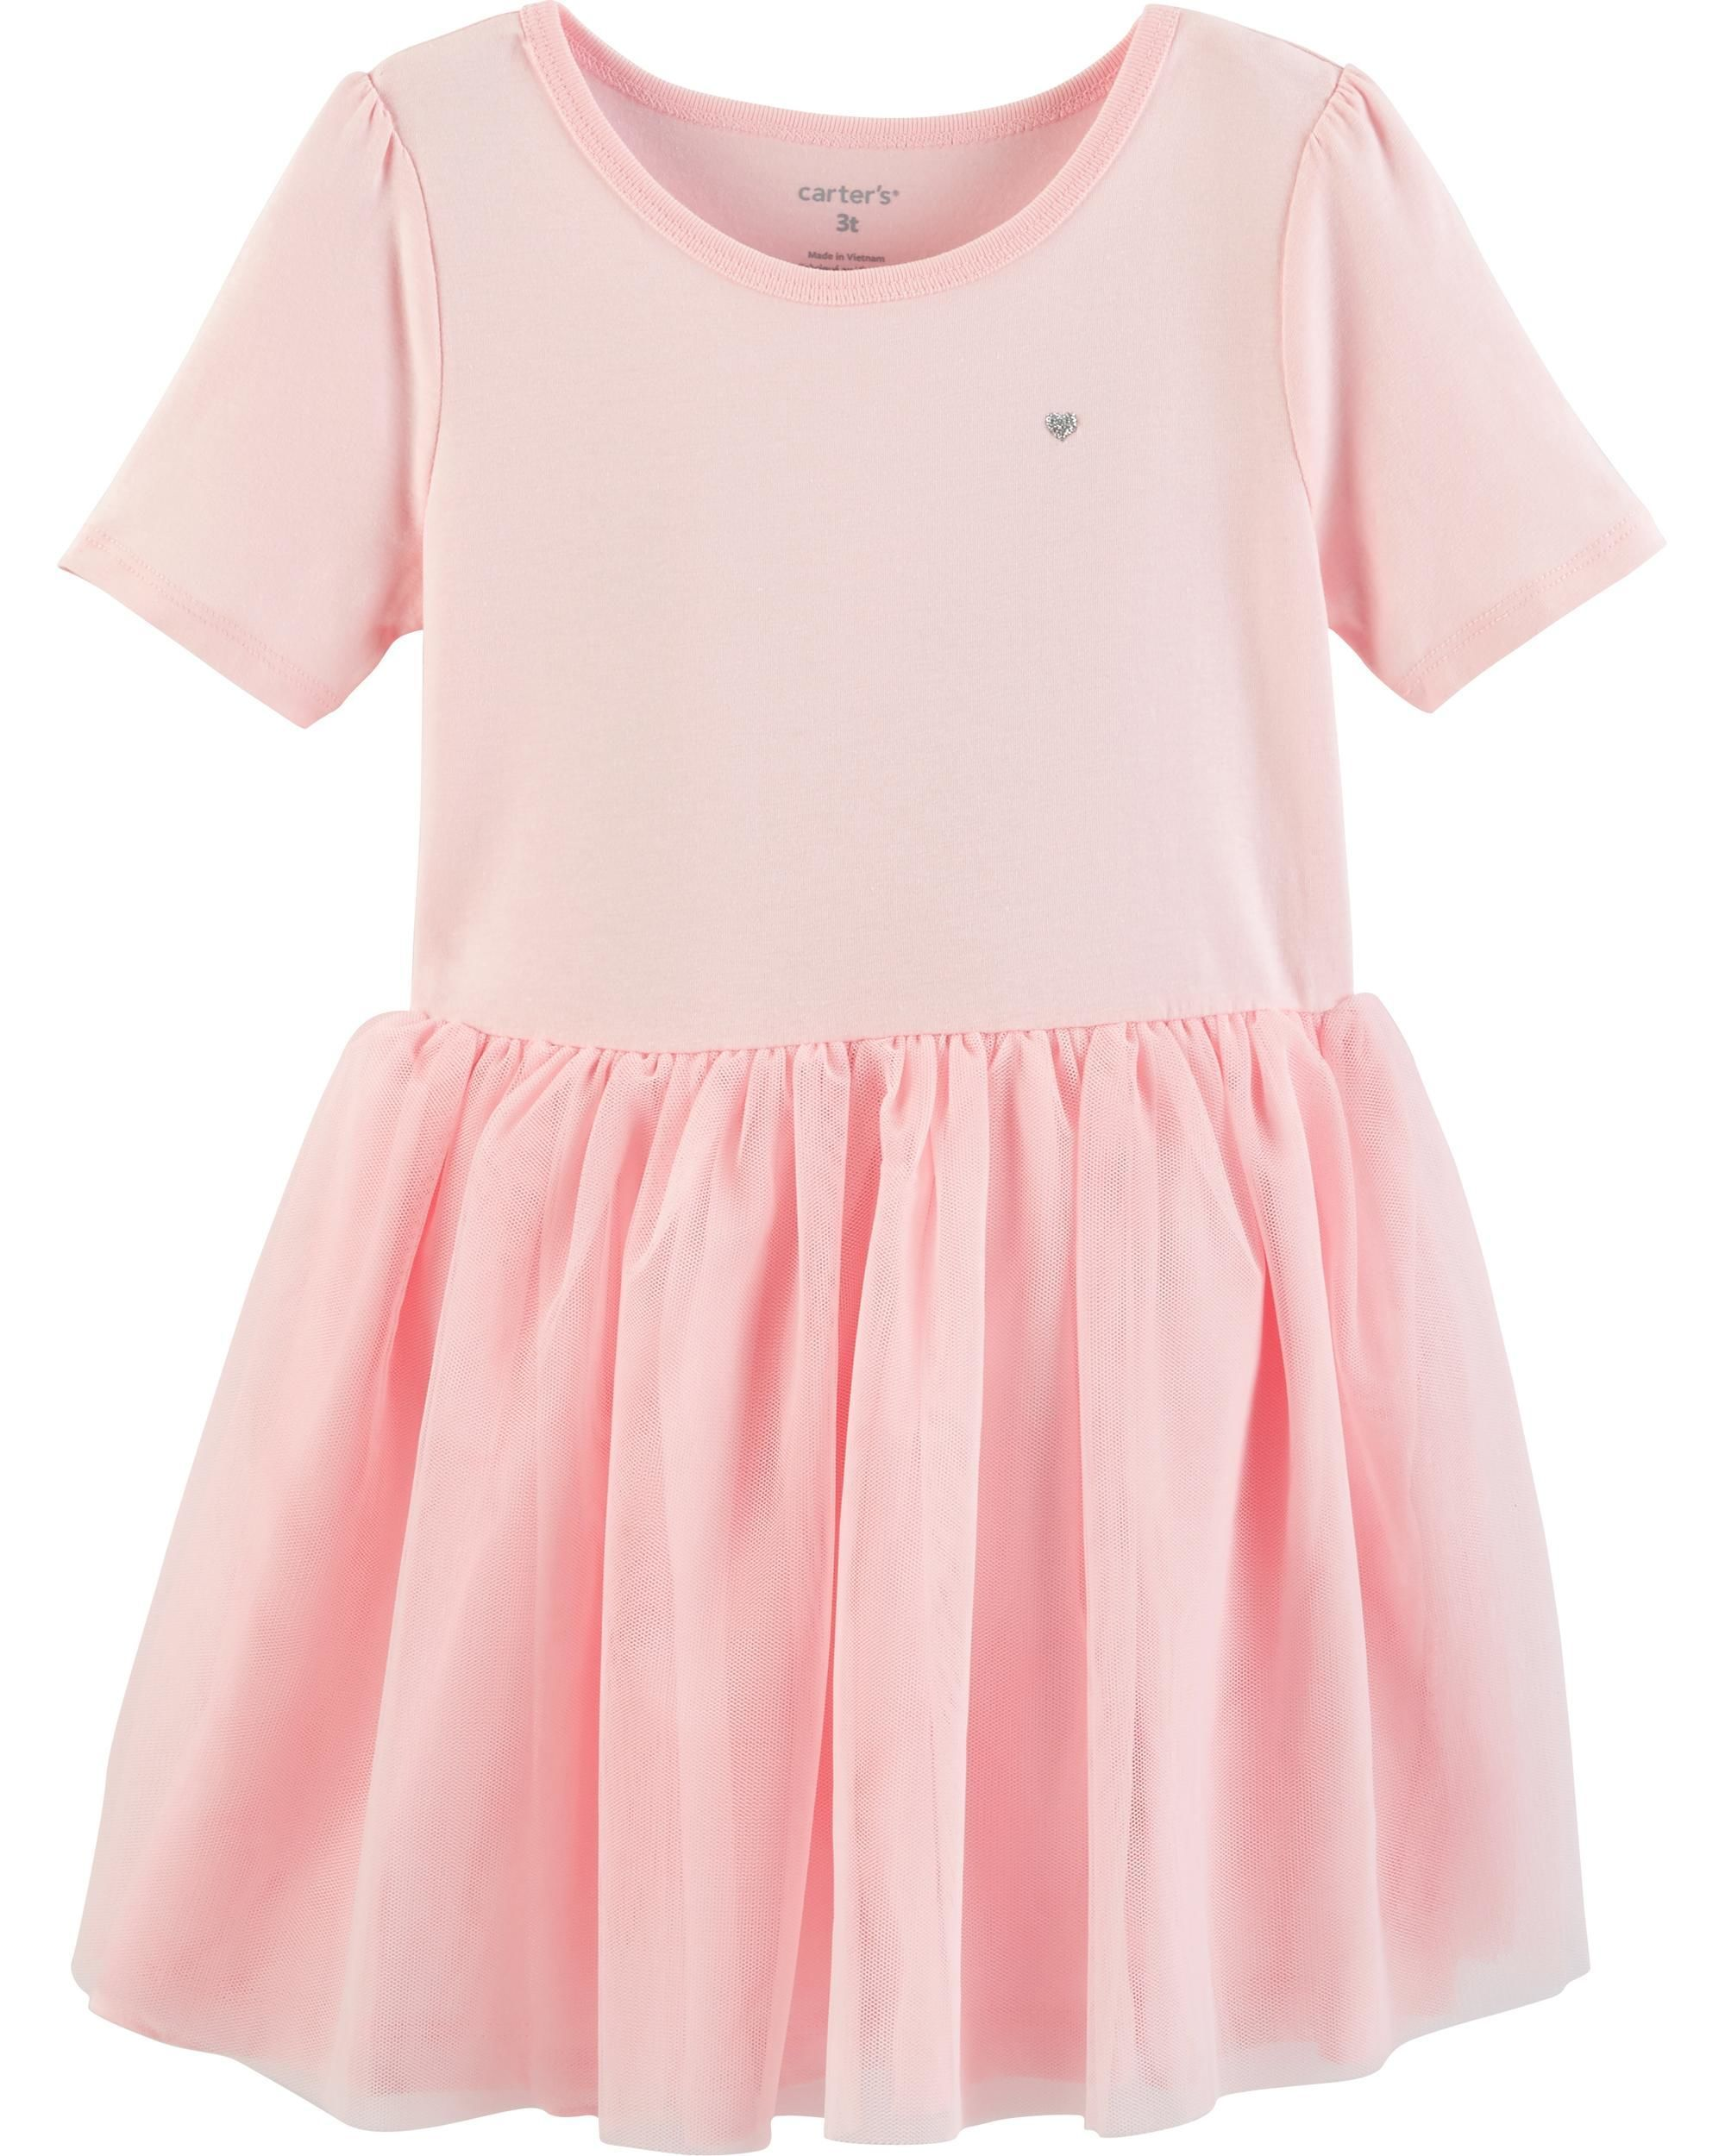 a14514217ae2 Toddler Girl Tutu Jersey Dress | Carters.com #toddlerdresses ...